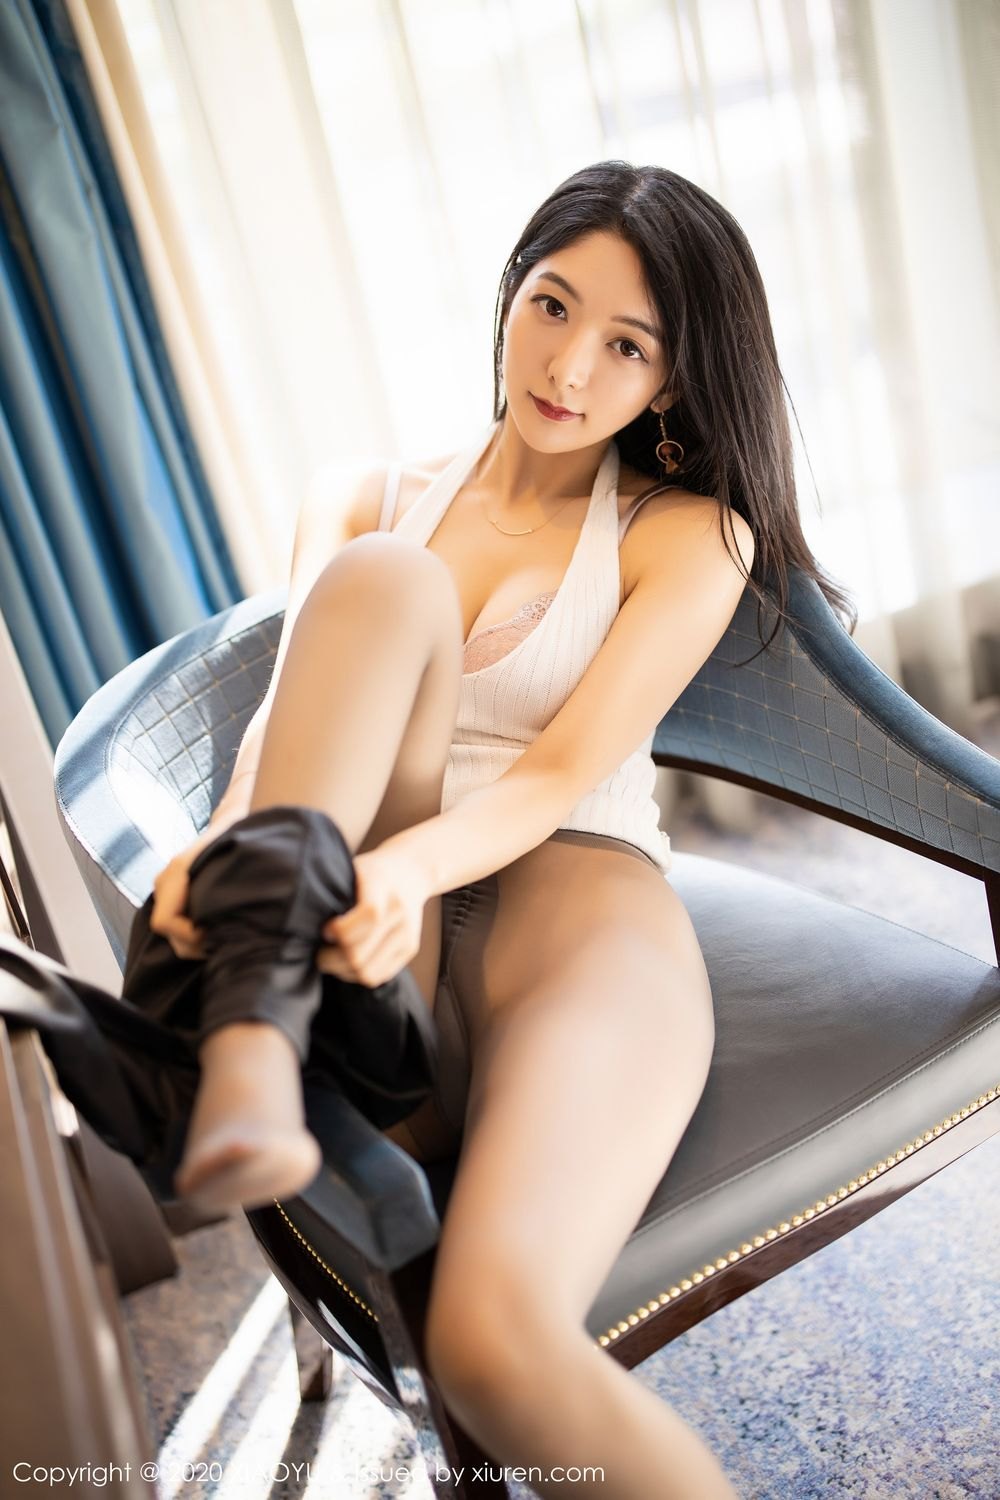 [XiaoYu] Vol.229 Xiao Re Ba 36P, Di Yi, Foot, Underwear, XiaoYu